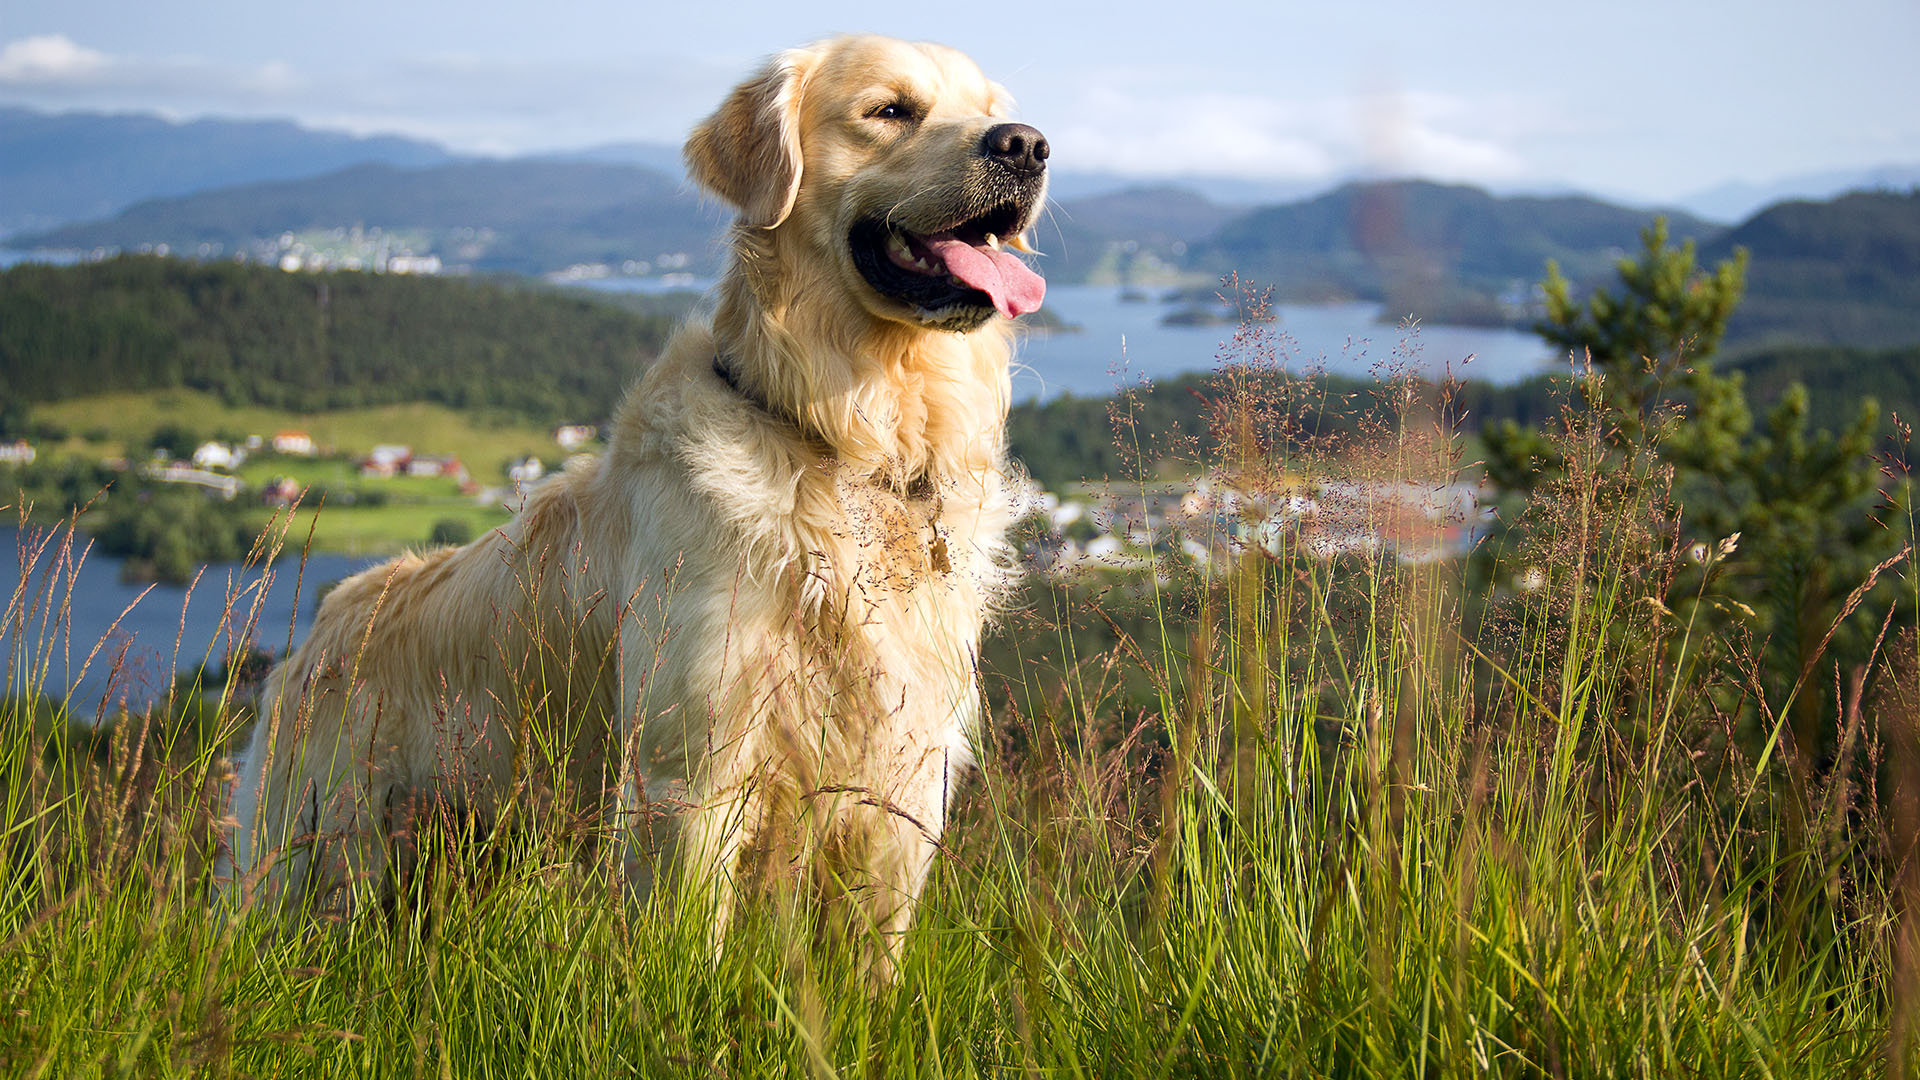 golden retriever puppy wallpapers - photo #19